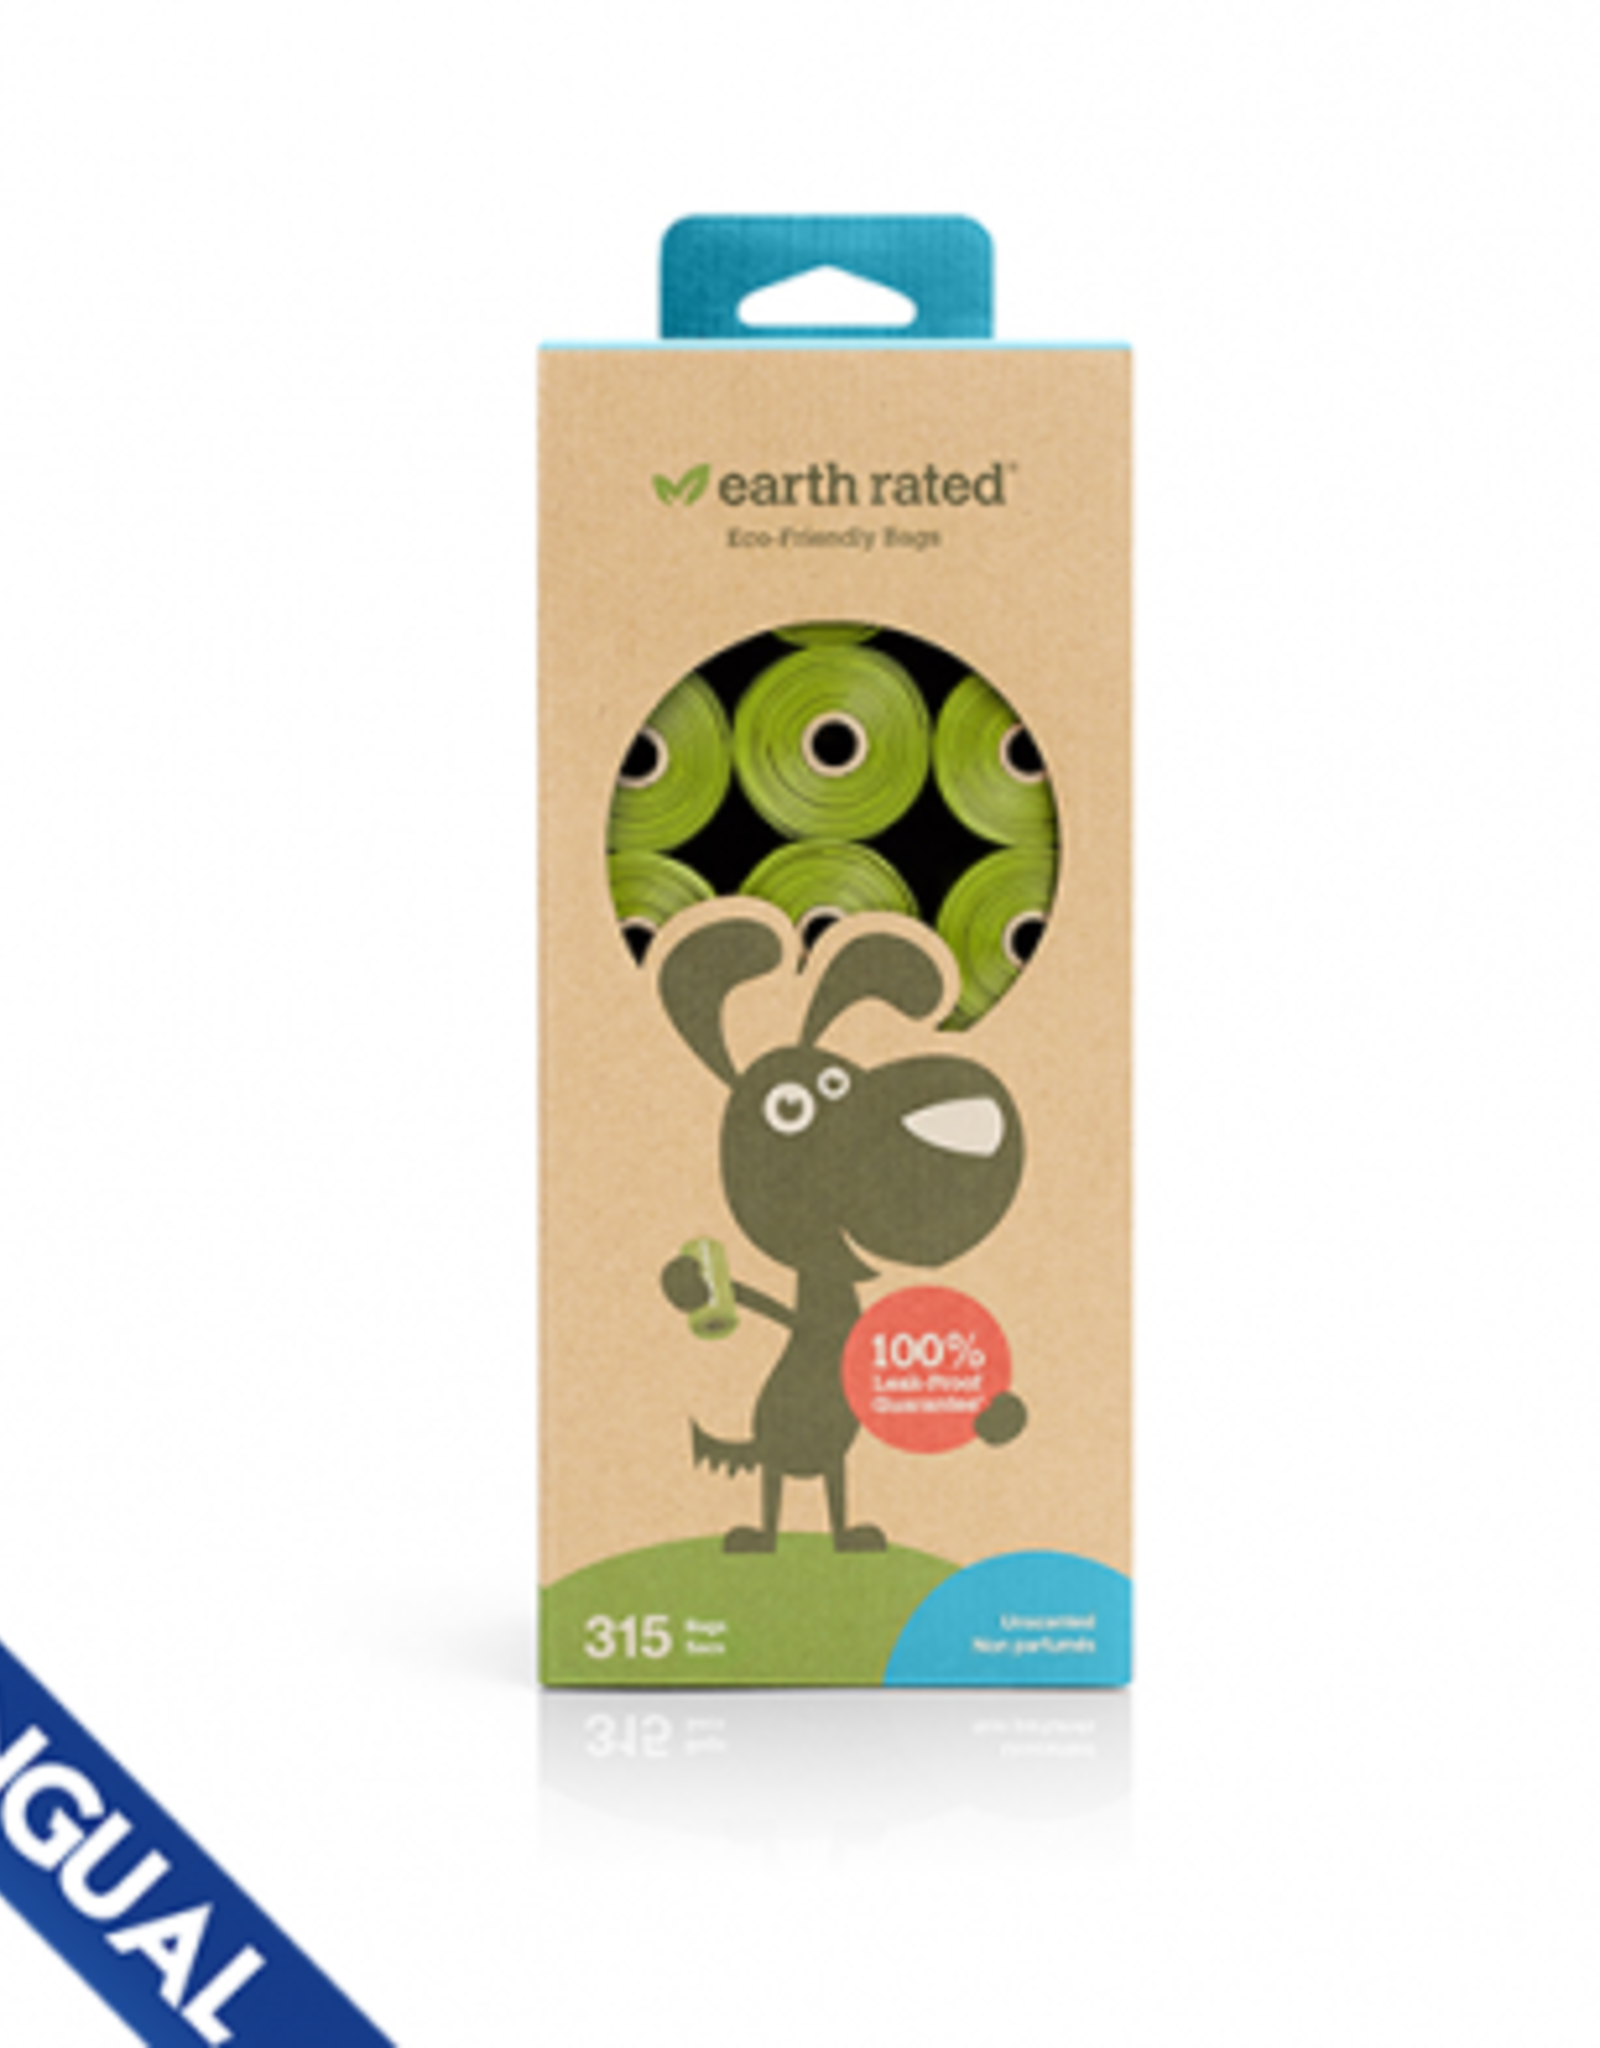 Earth Rated Earth Rated Unscented Refill Rolls 315 Bags/21 Rolls